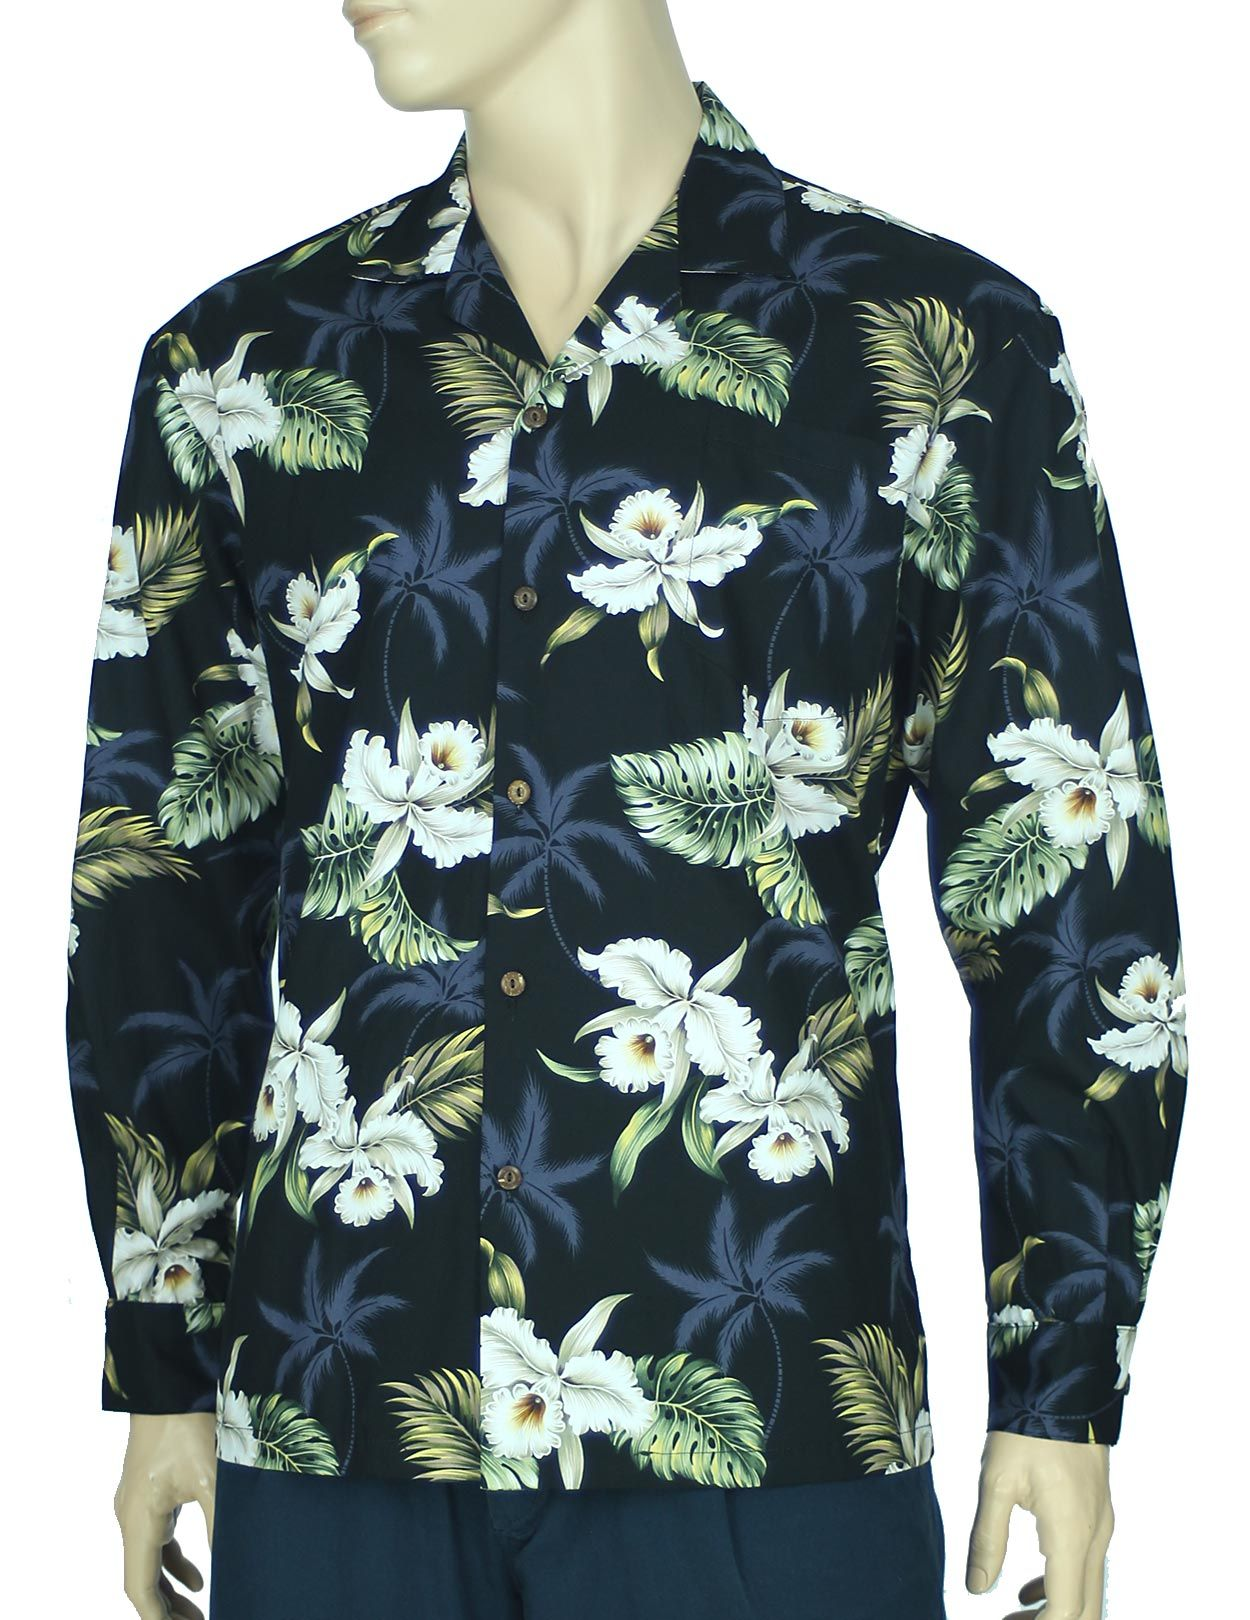 fe237dd276 Check out the deal on Long Sleeve Aloha Shirt Maui Orchids at ...